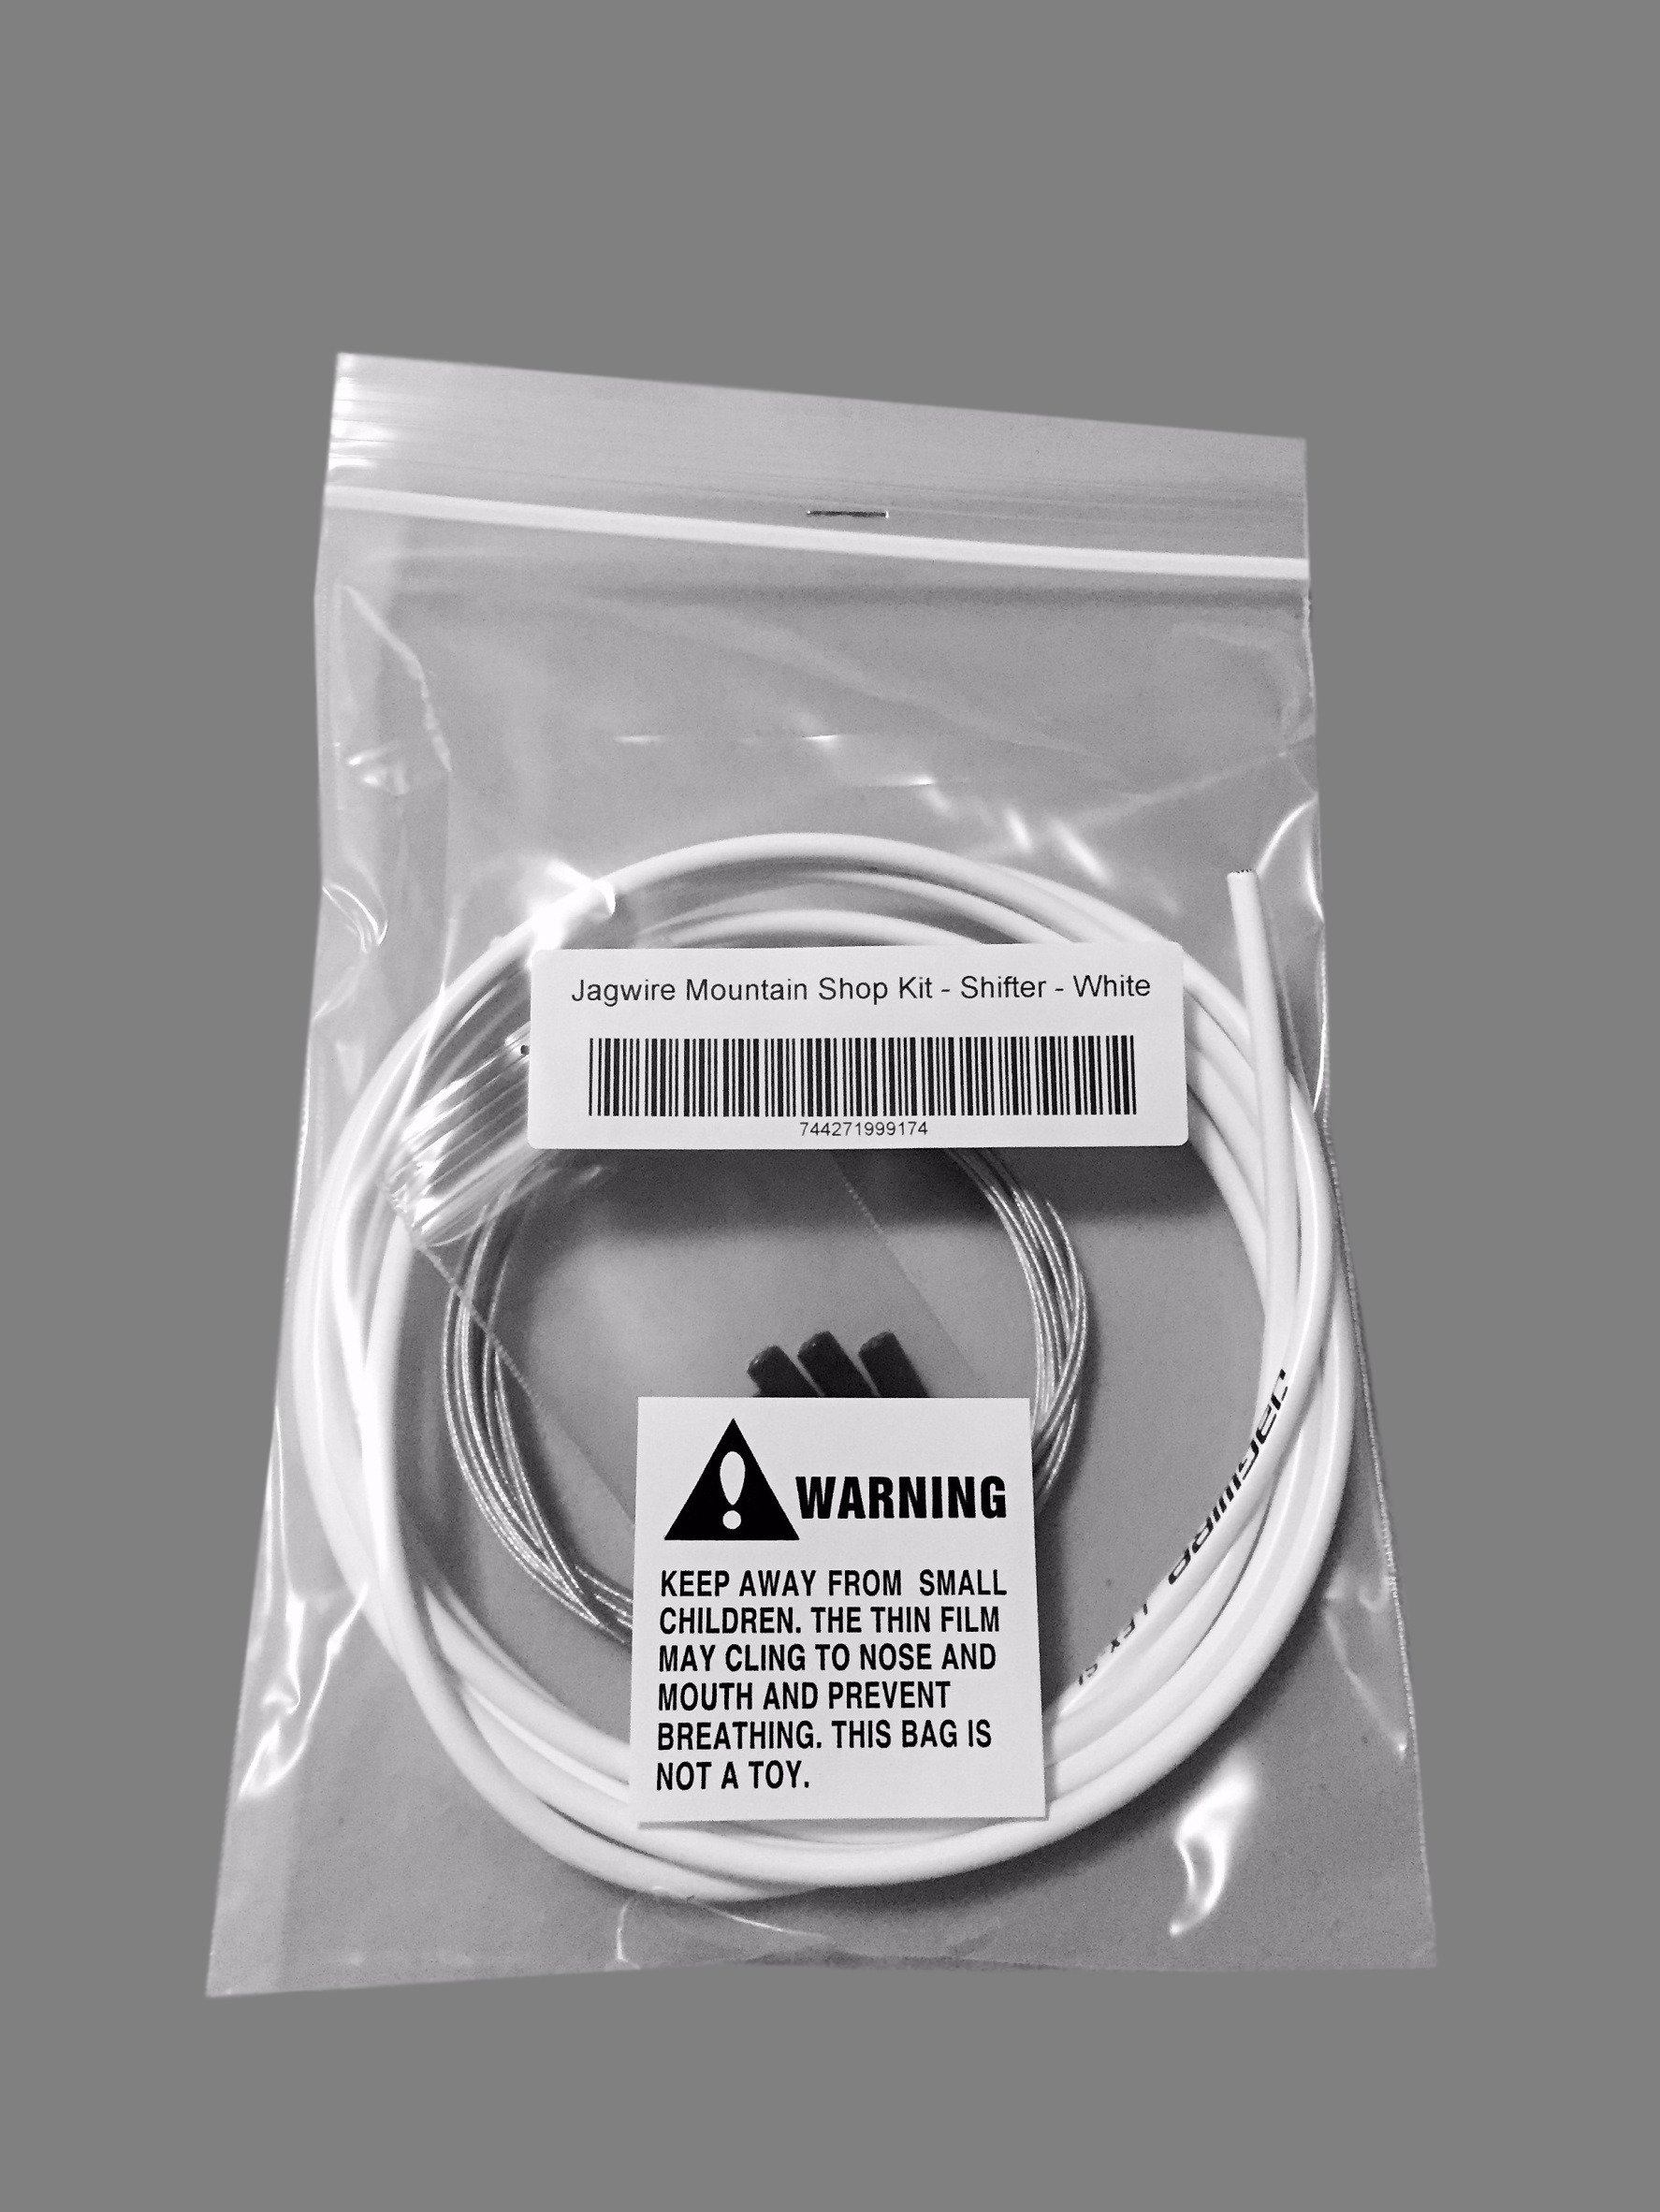 JAGWIRE MOUNTAIN SHOP KIT - Shifter / Derailleur Cable & Housing Kit - WHITE - SRAM/Shimano MTB by Jagwire (Image #3)